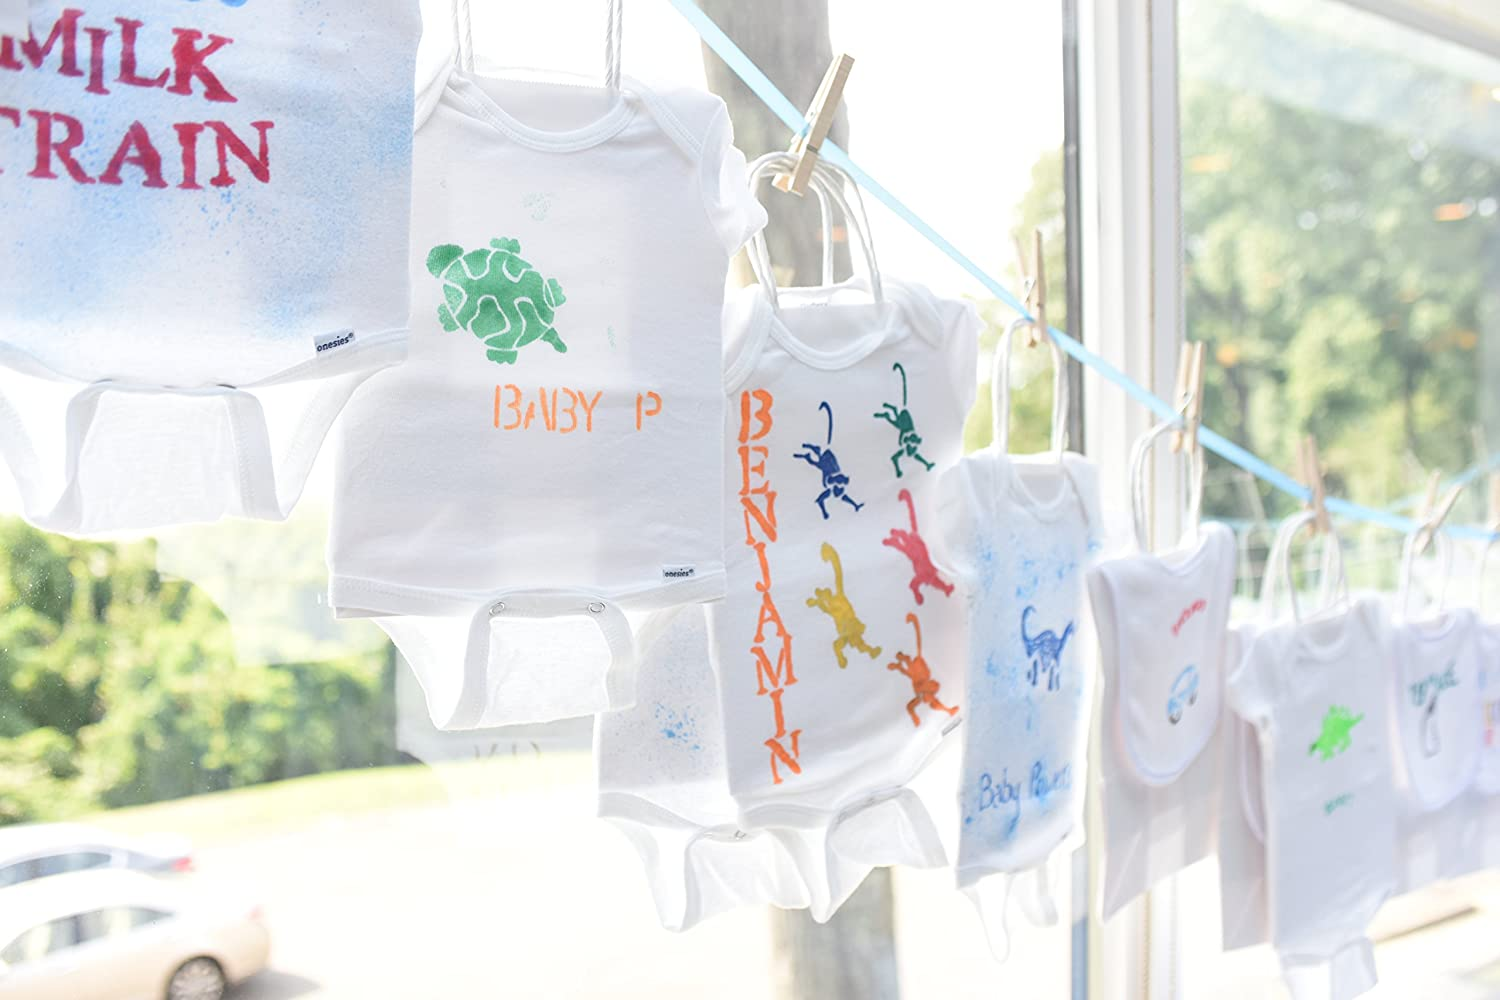 Baby Shower Onesie Decorating Station - The Perfect Baby Shower Activity! Baby Showers Inc. BSI001